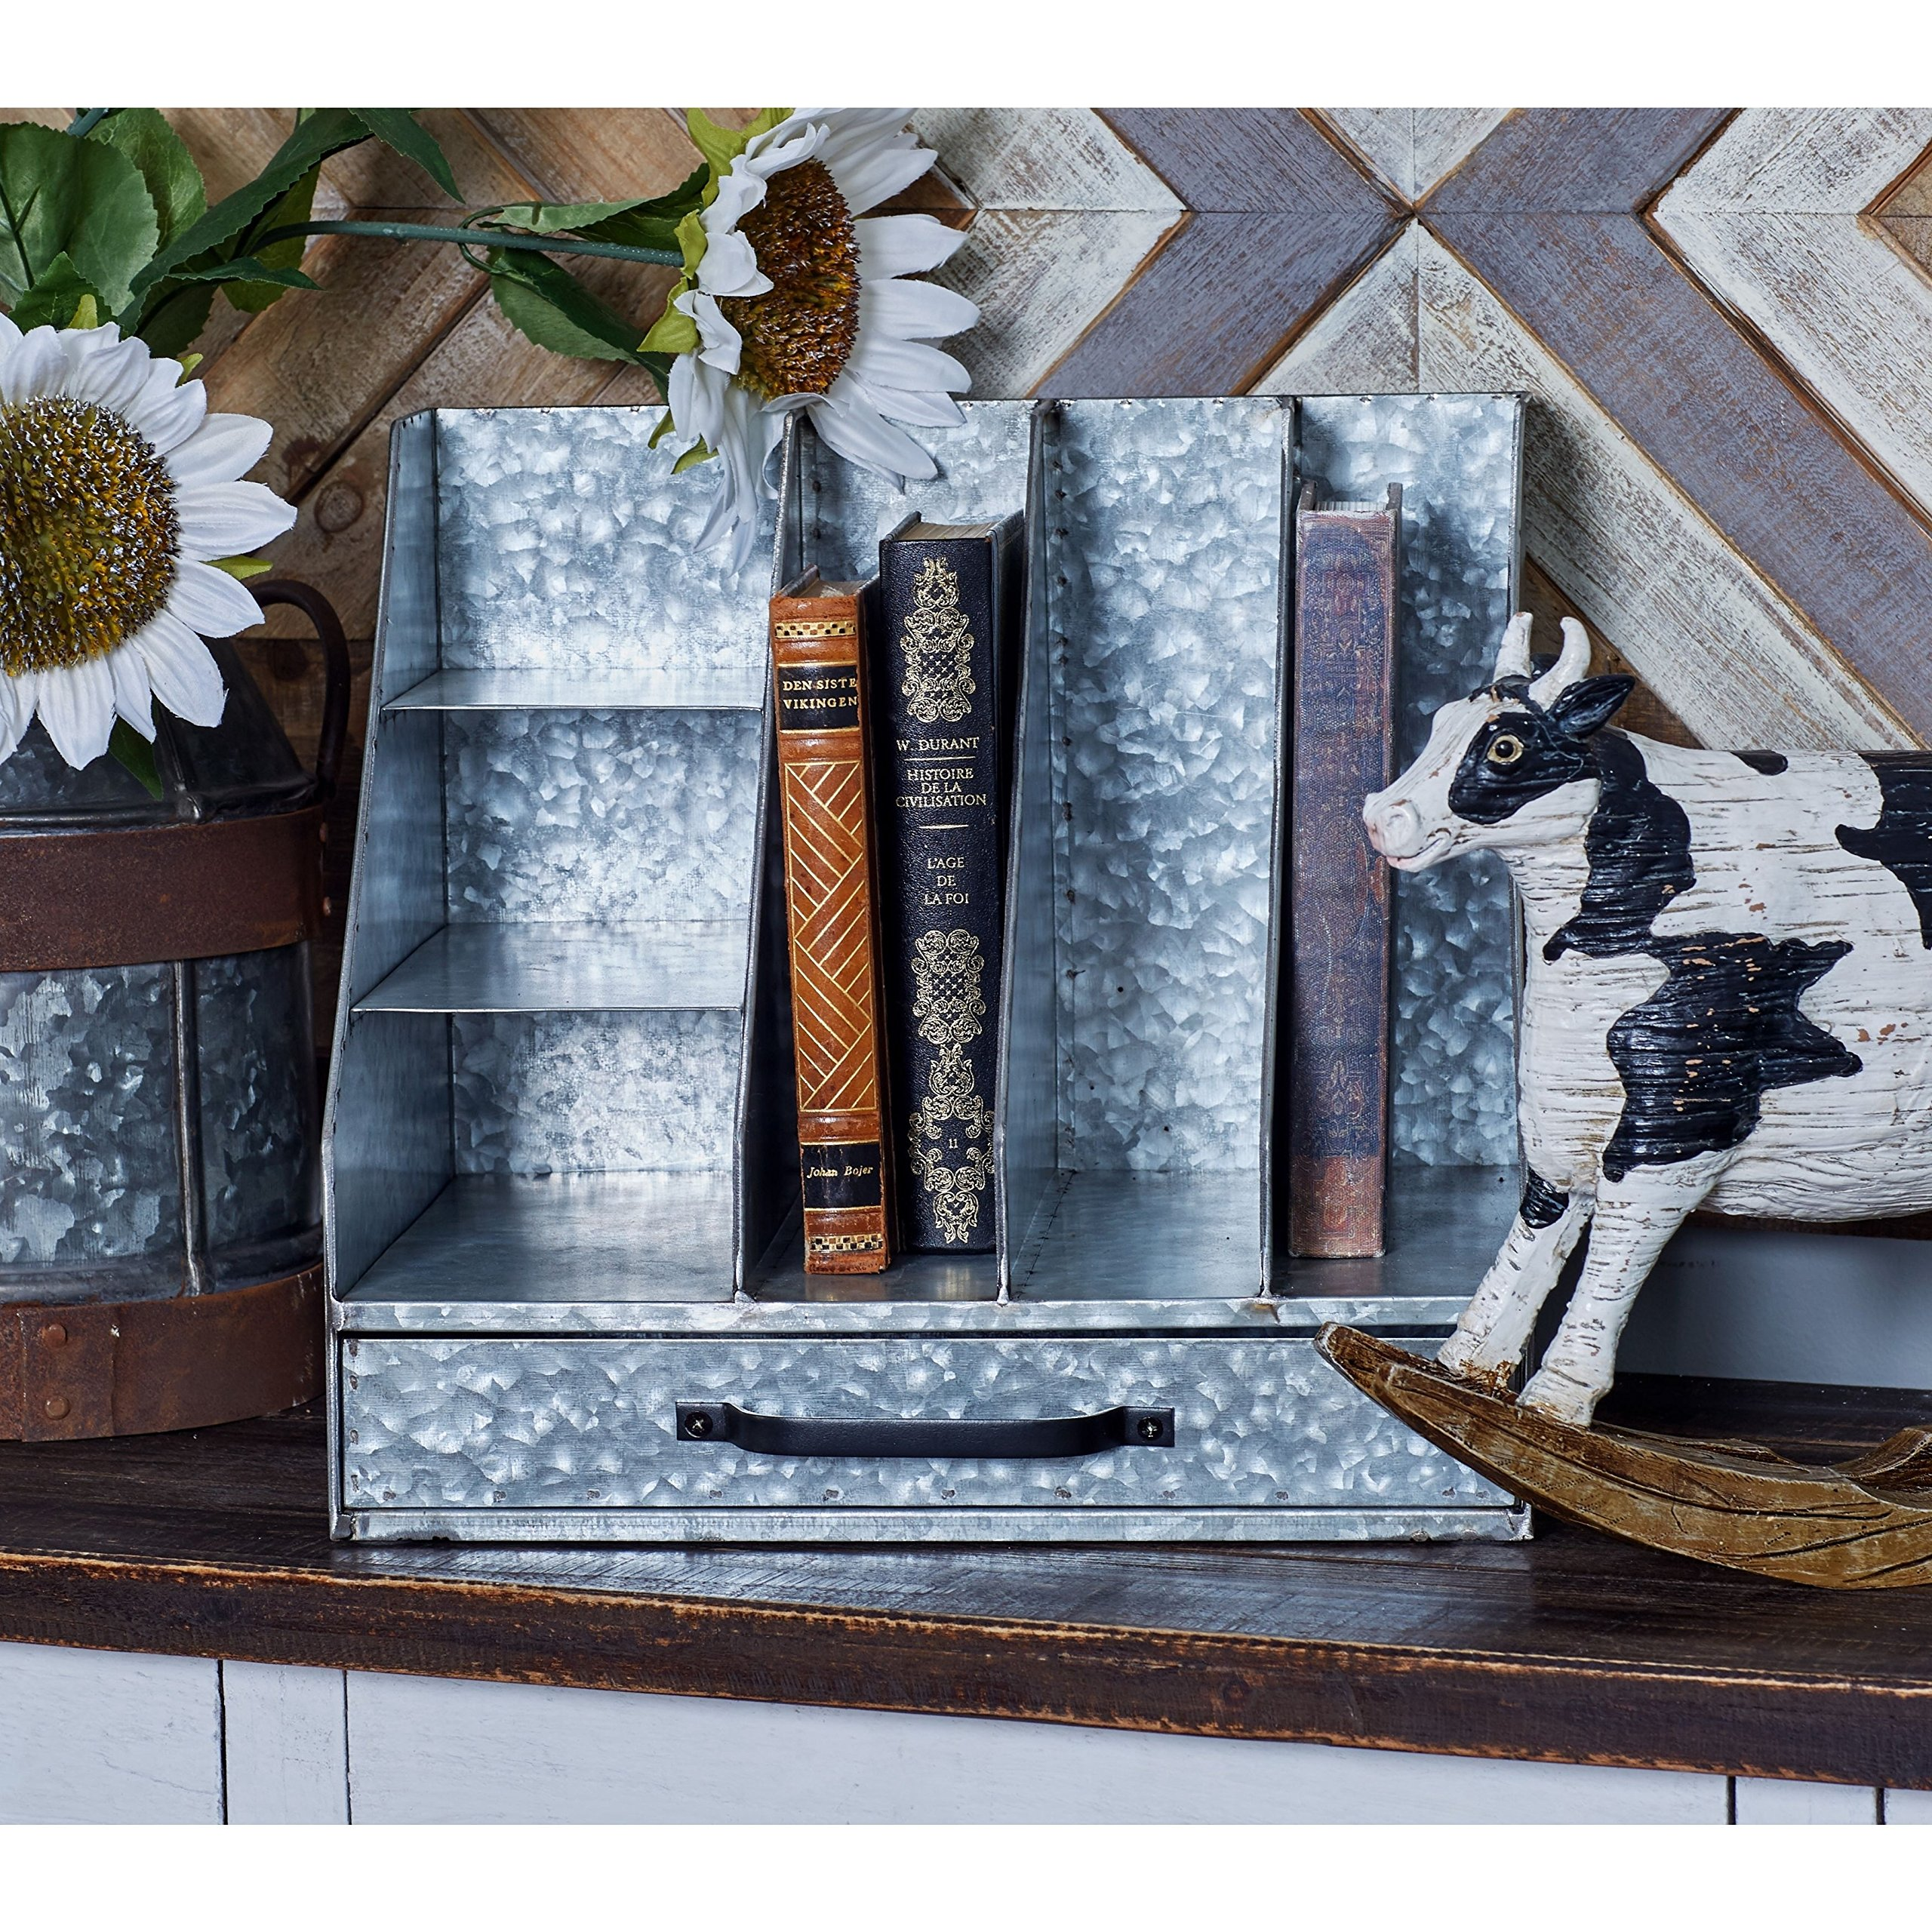 Durable,Stylish and Provides Ample Storage Space Traditional Multi-Compartment Iron Letter Holder,Grey,Conveniently Place This on Desks,Tables, or Shelves,13 x 10 x 12